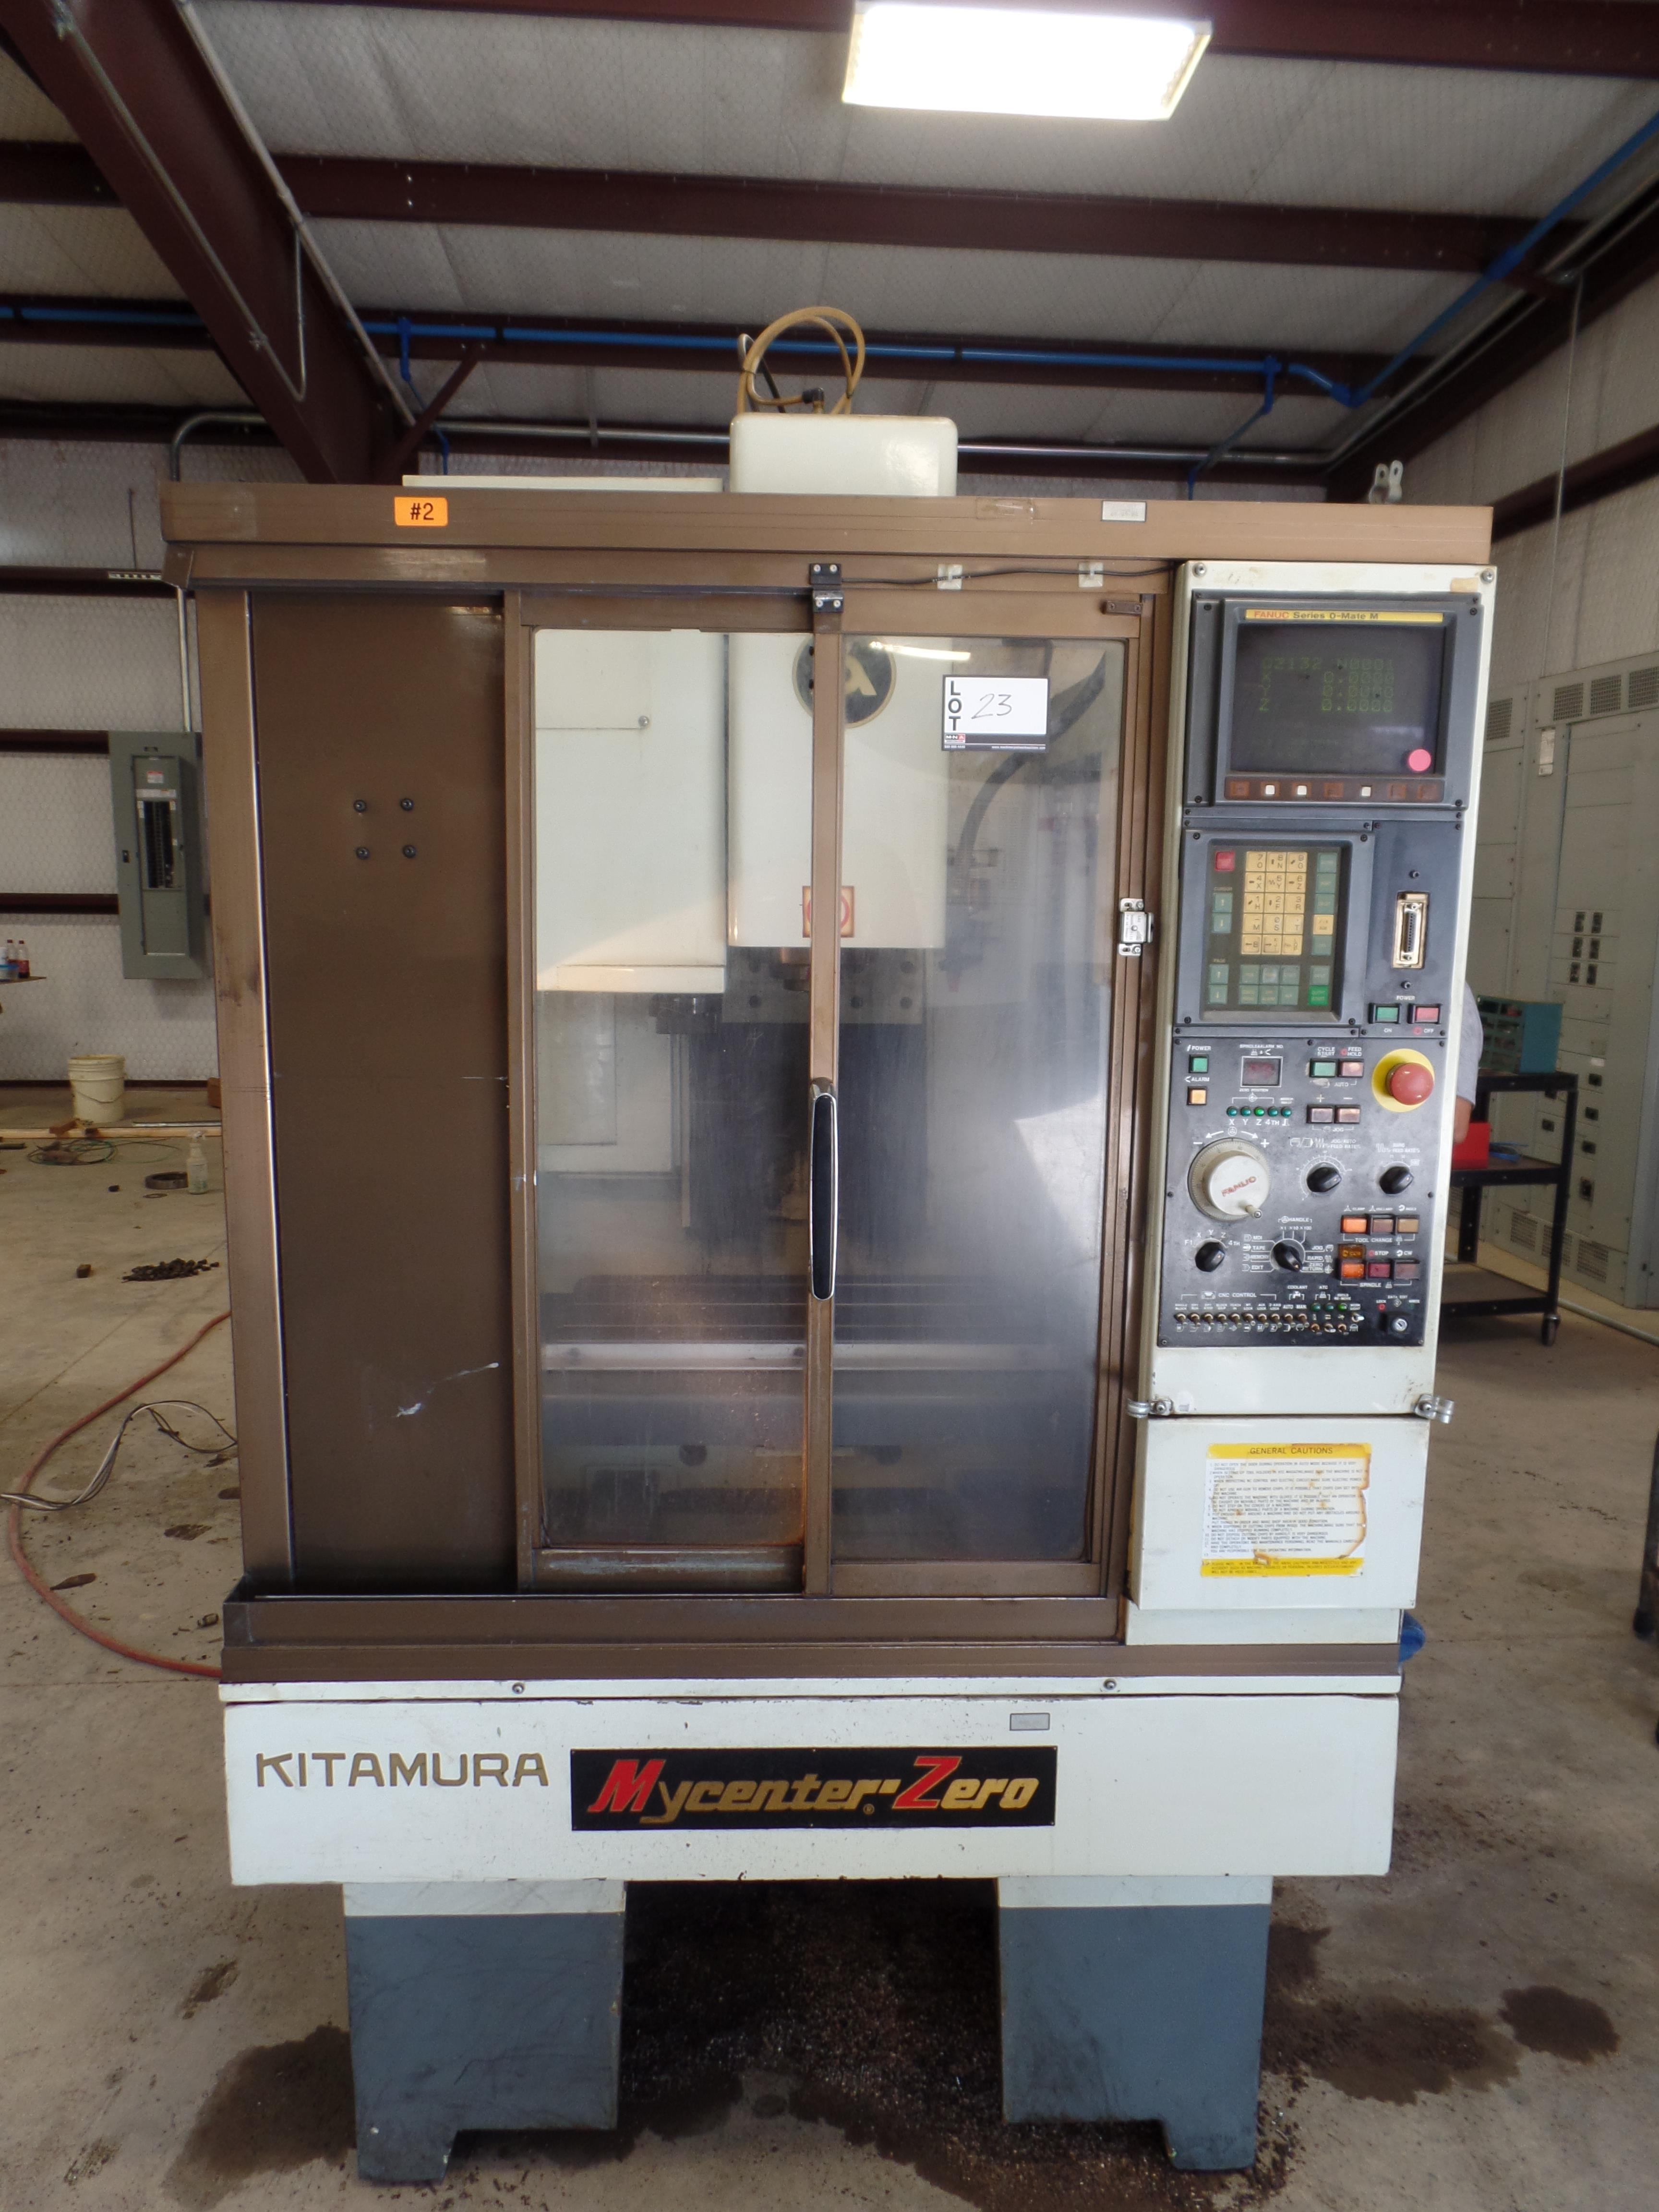 "1997 Kitamura MyCenter 0 CNC Mill, Fanuc o-Mate control, travels 12"" x, 10"" y, 12'' z, NST 30 tape"